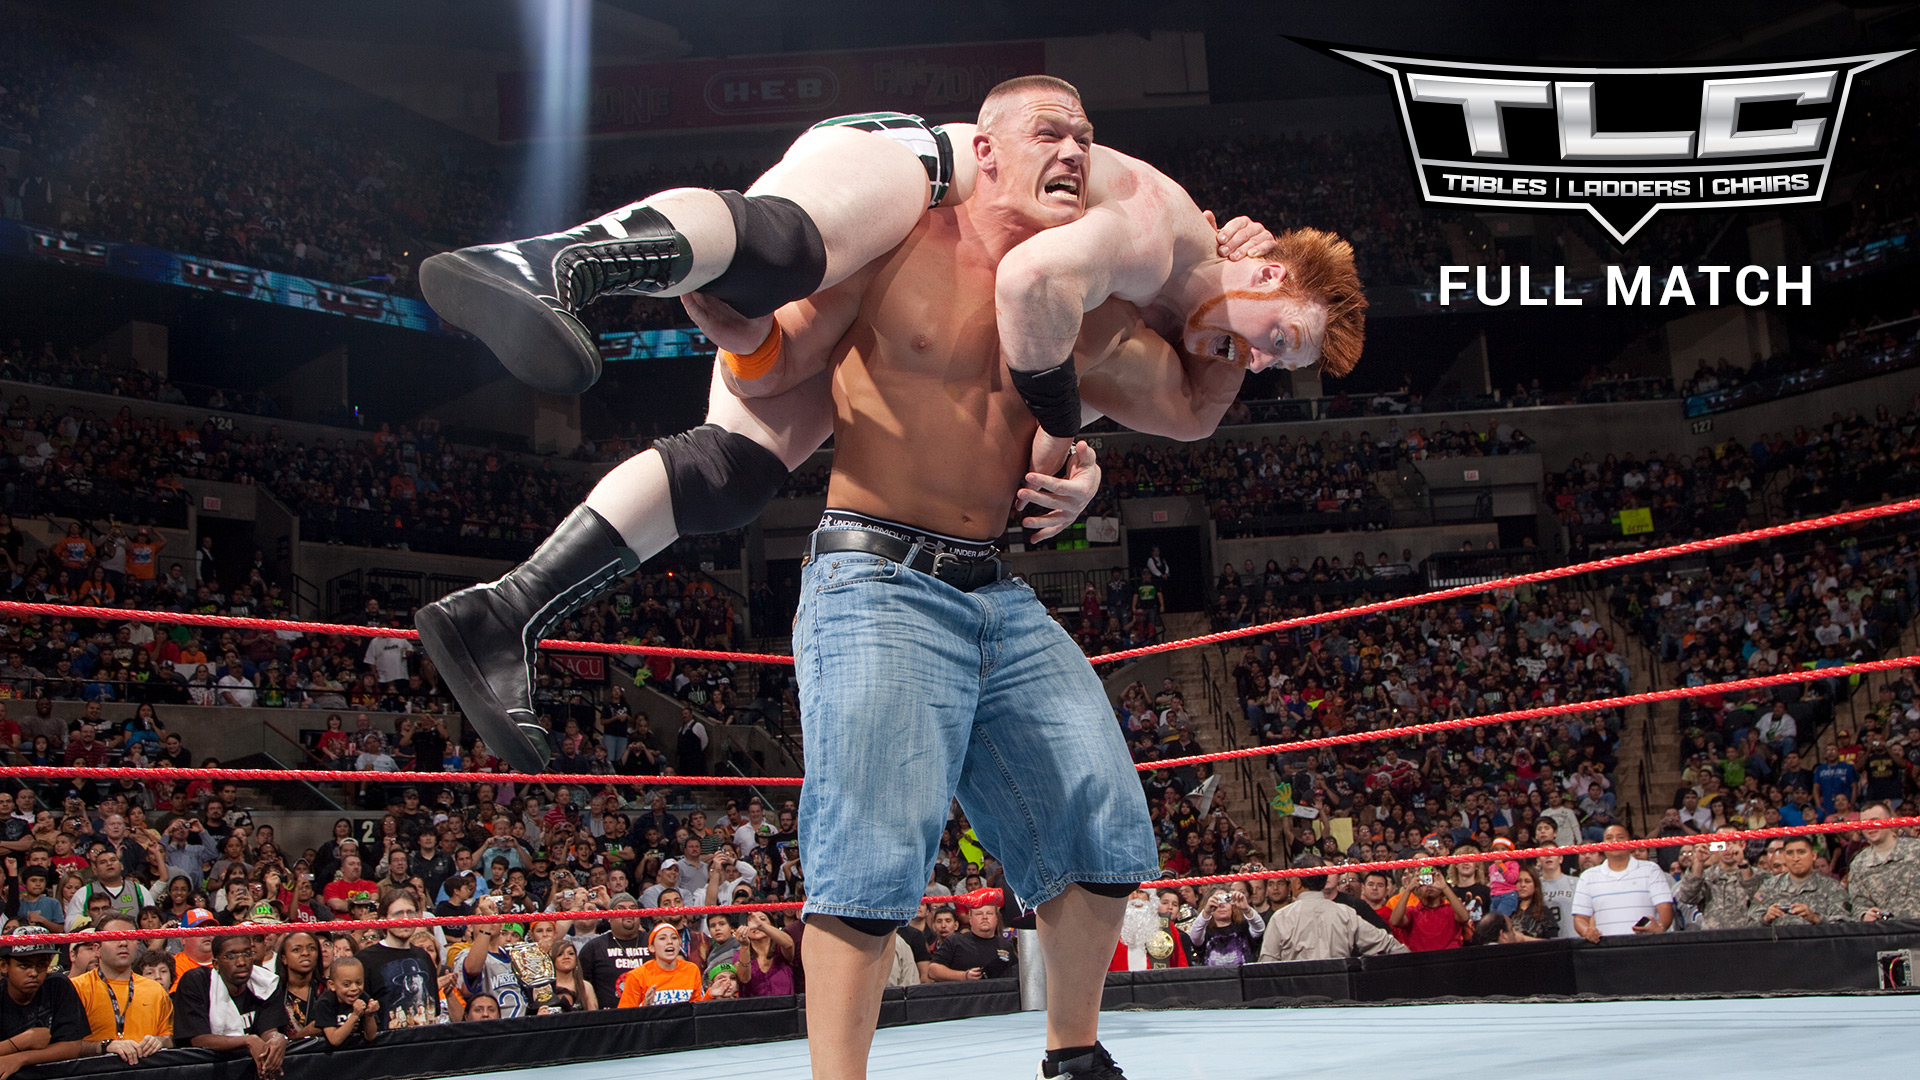 le site officiel fran231ais de catch pour lunivers de la wwe